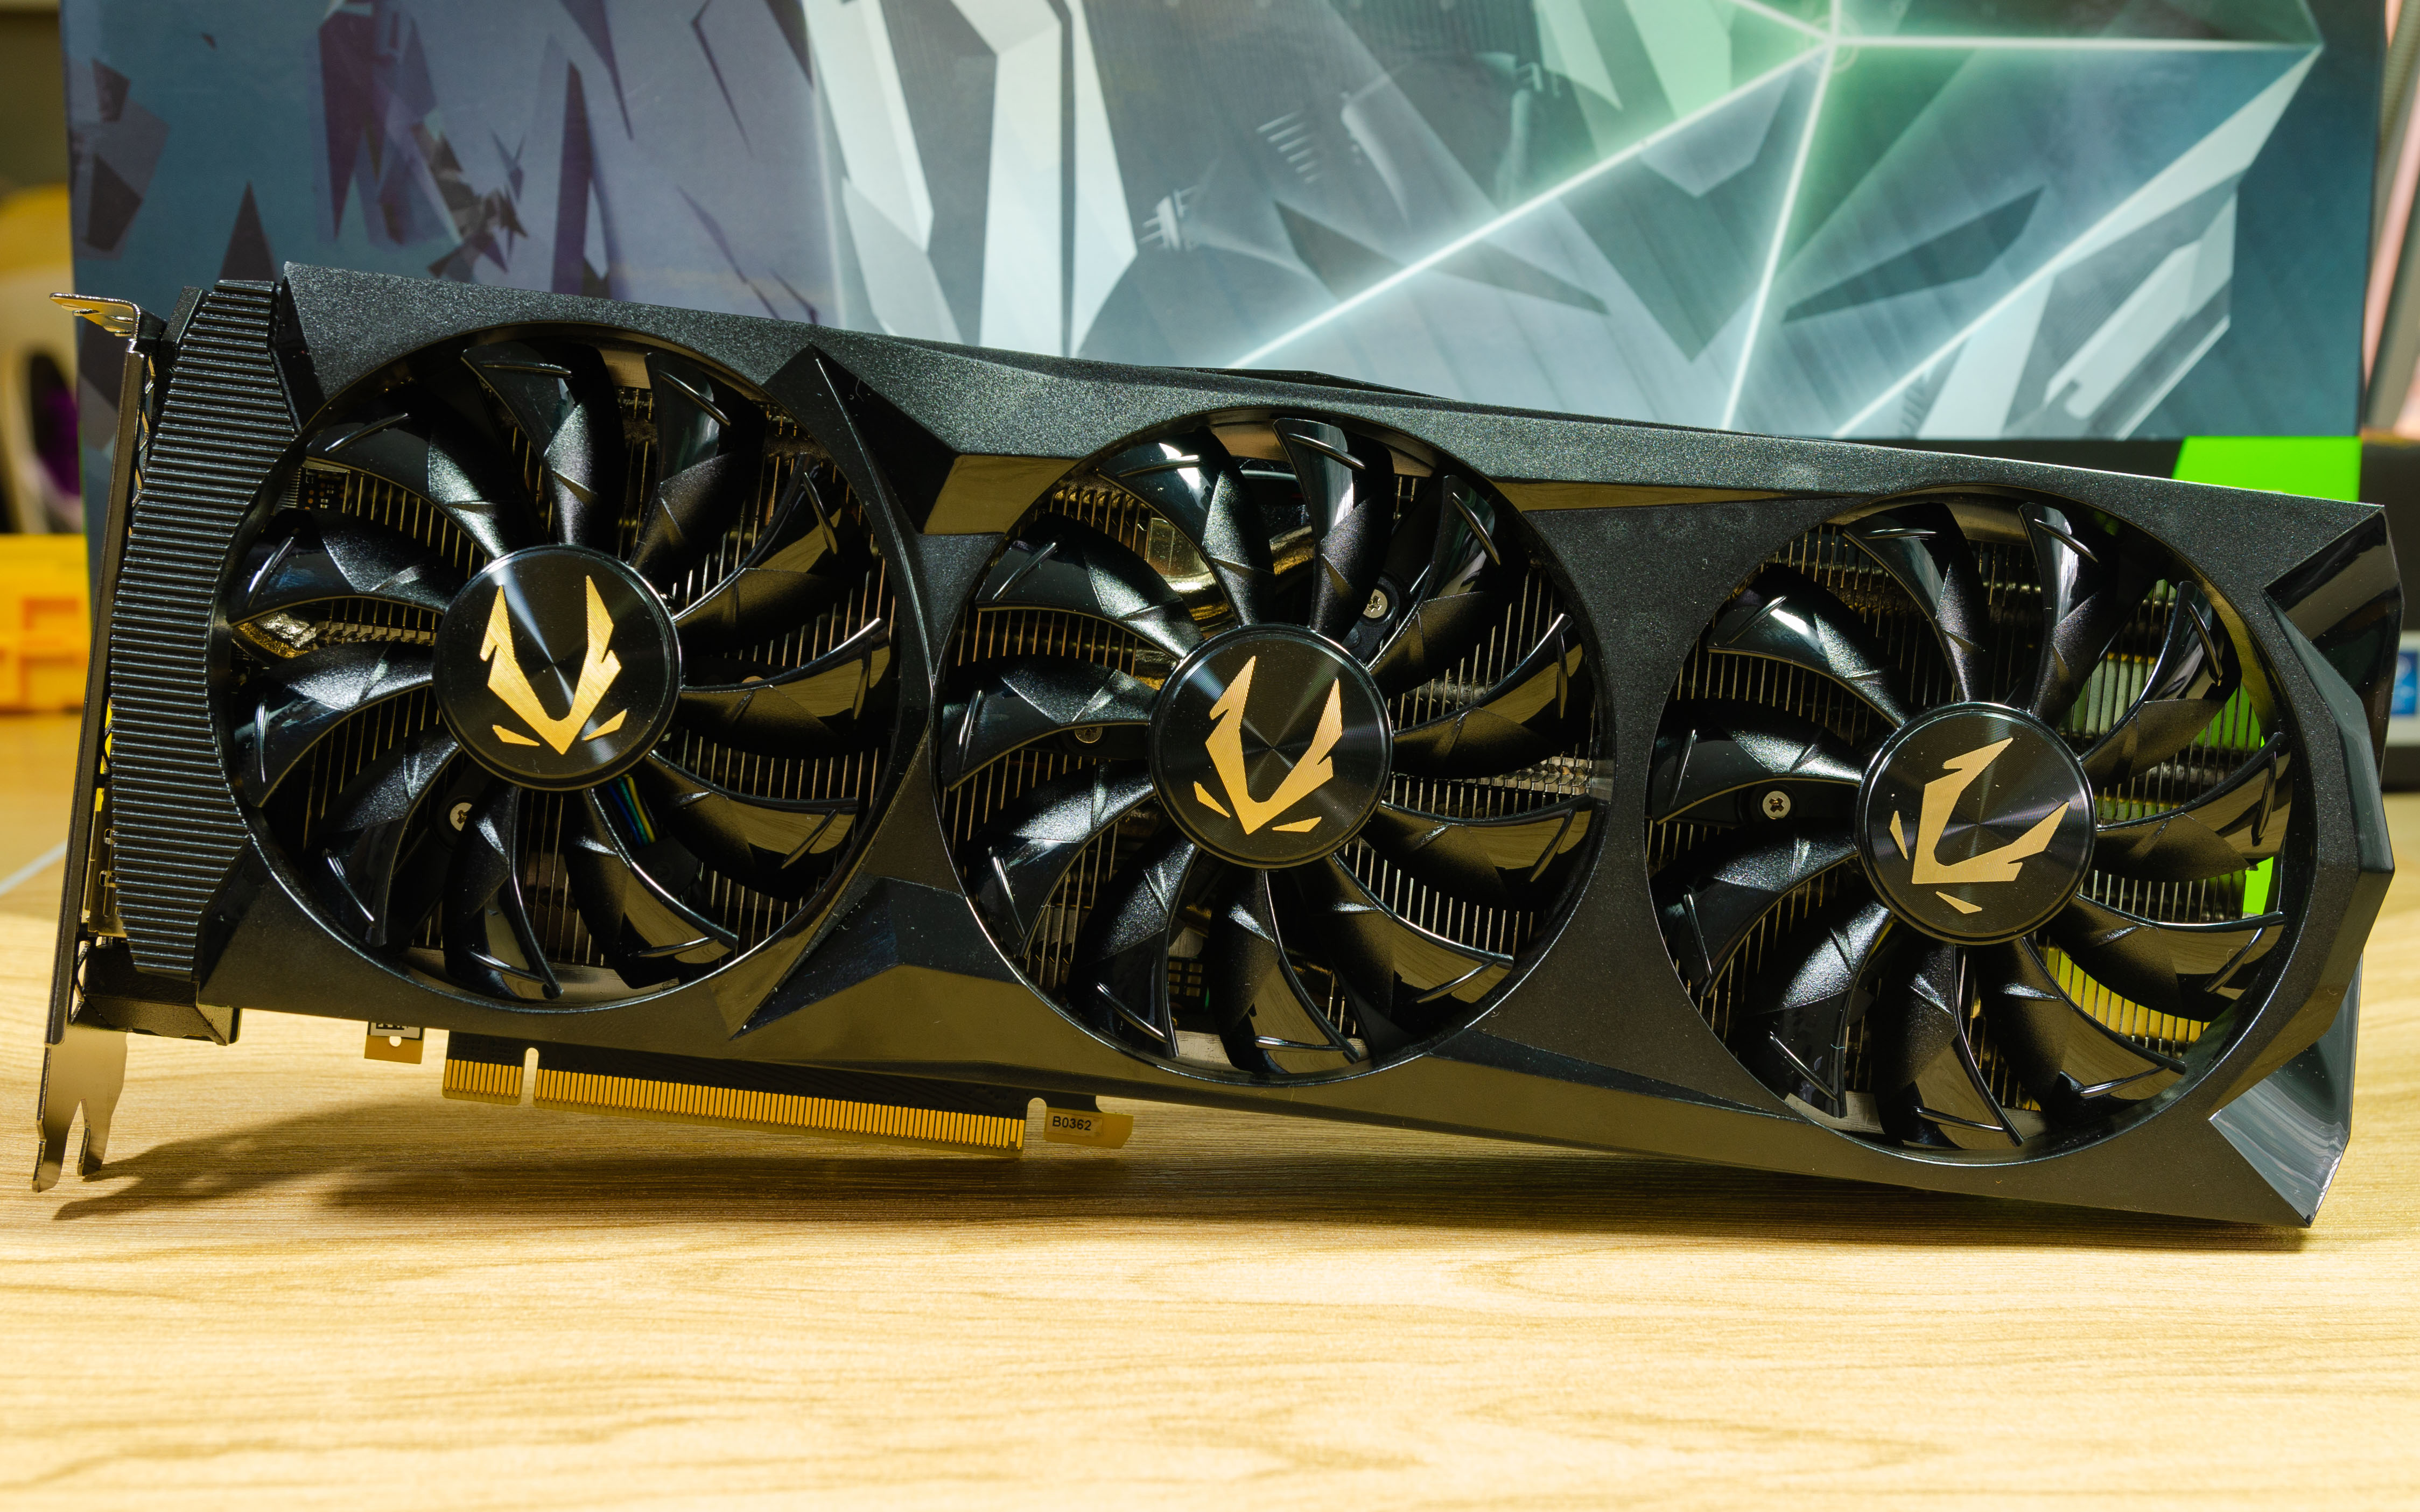 Unboxing & Preview: ZOTAC Gaming GeForce RTX 2080 Ti AMP Edition